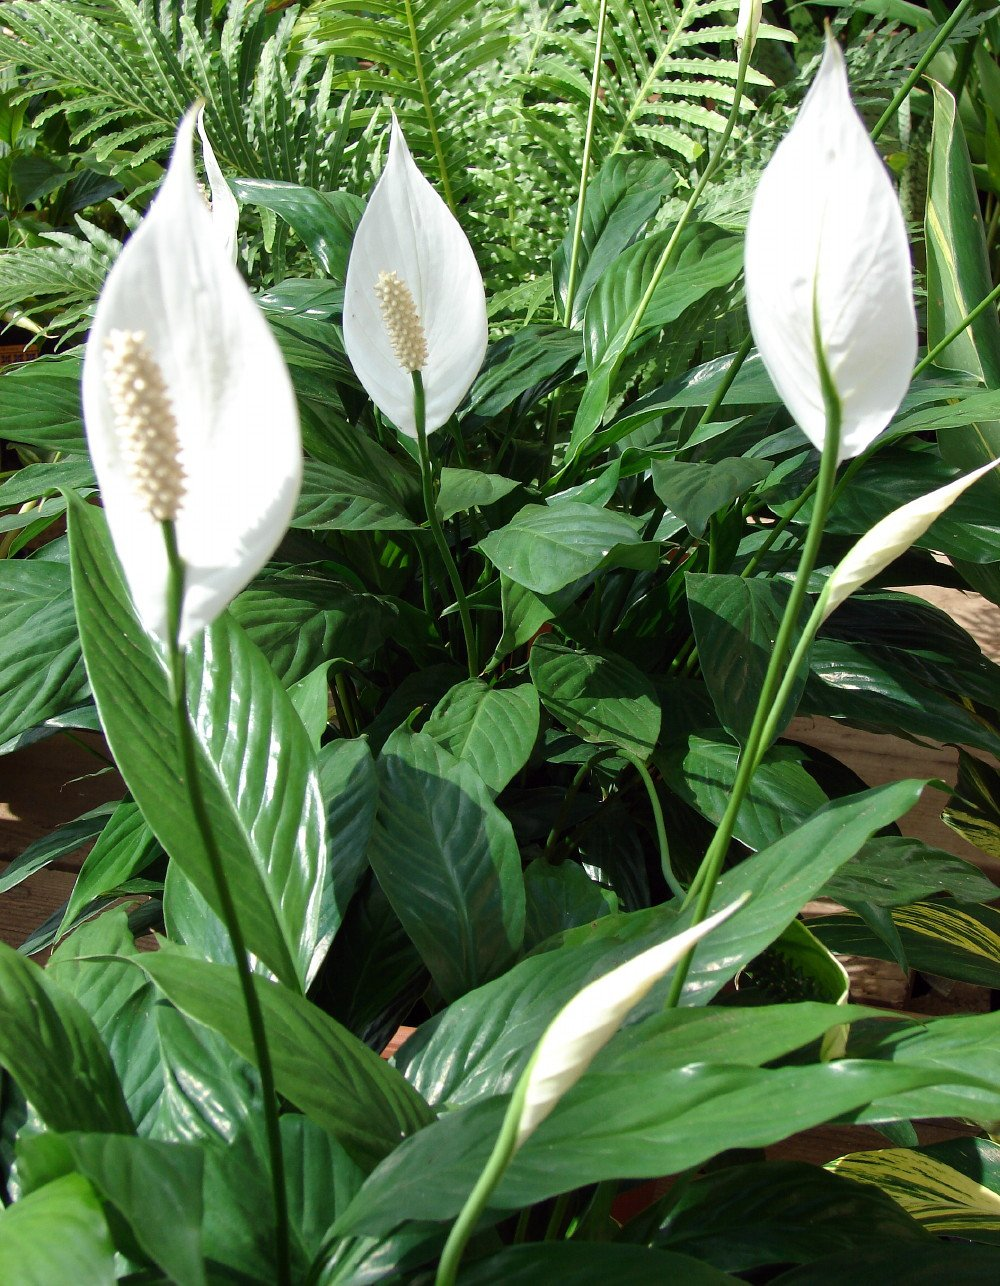 Amazon peace lily plant spathyphyllium great house plant amazon peace lily plant spathyphyllium great house plant 4 pot peace lilly patio lawn garden dhlflorist Gallery